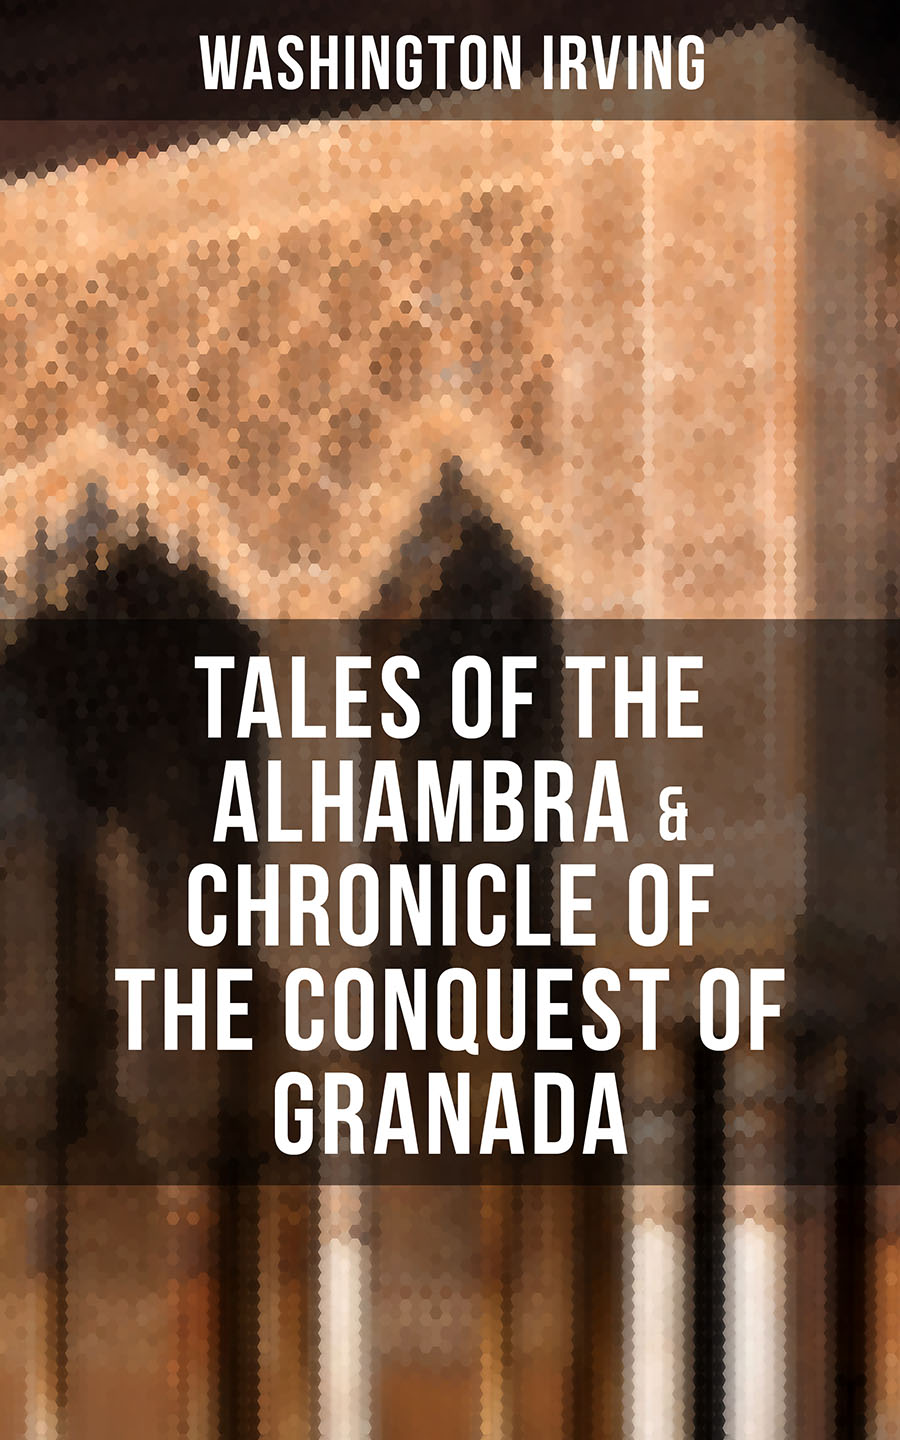 Washington Irving TALES OF THE ALHAMBRA & CHRONICLE OF THE CONQUEST OF GRANADA